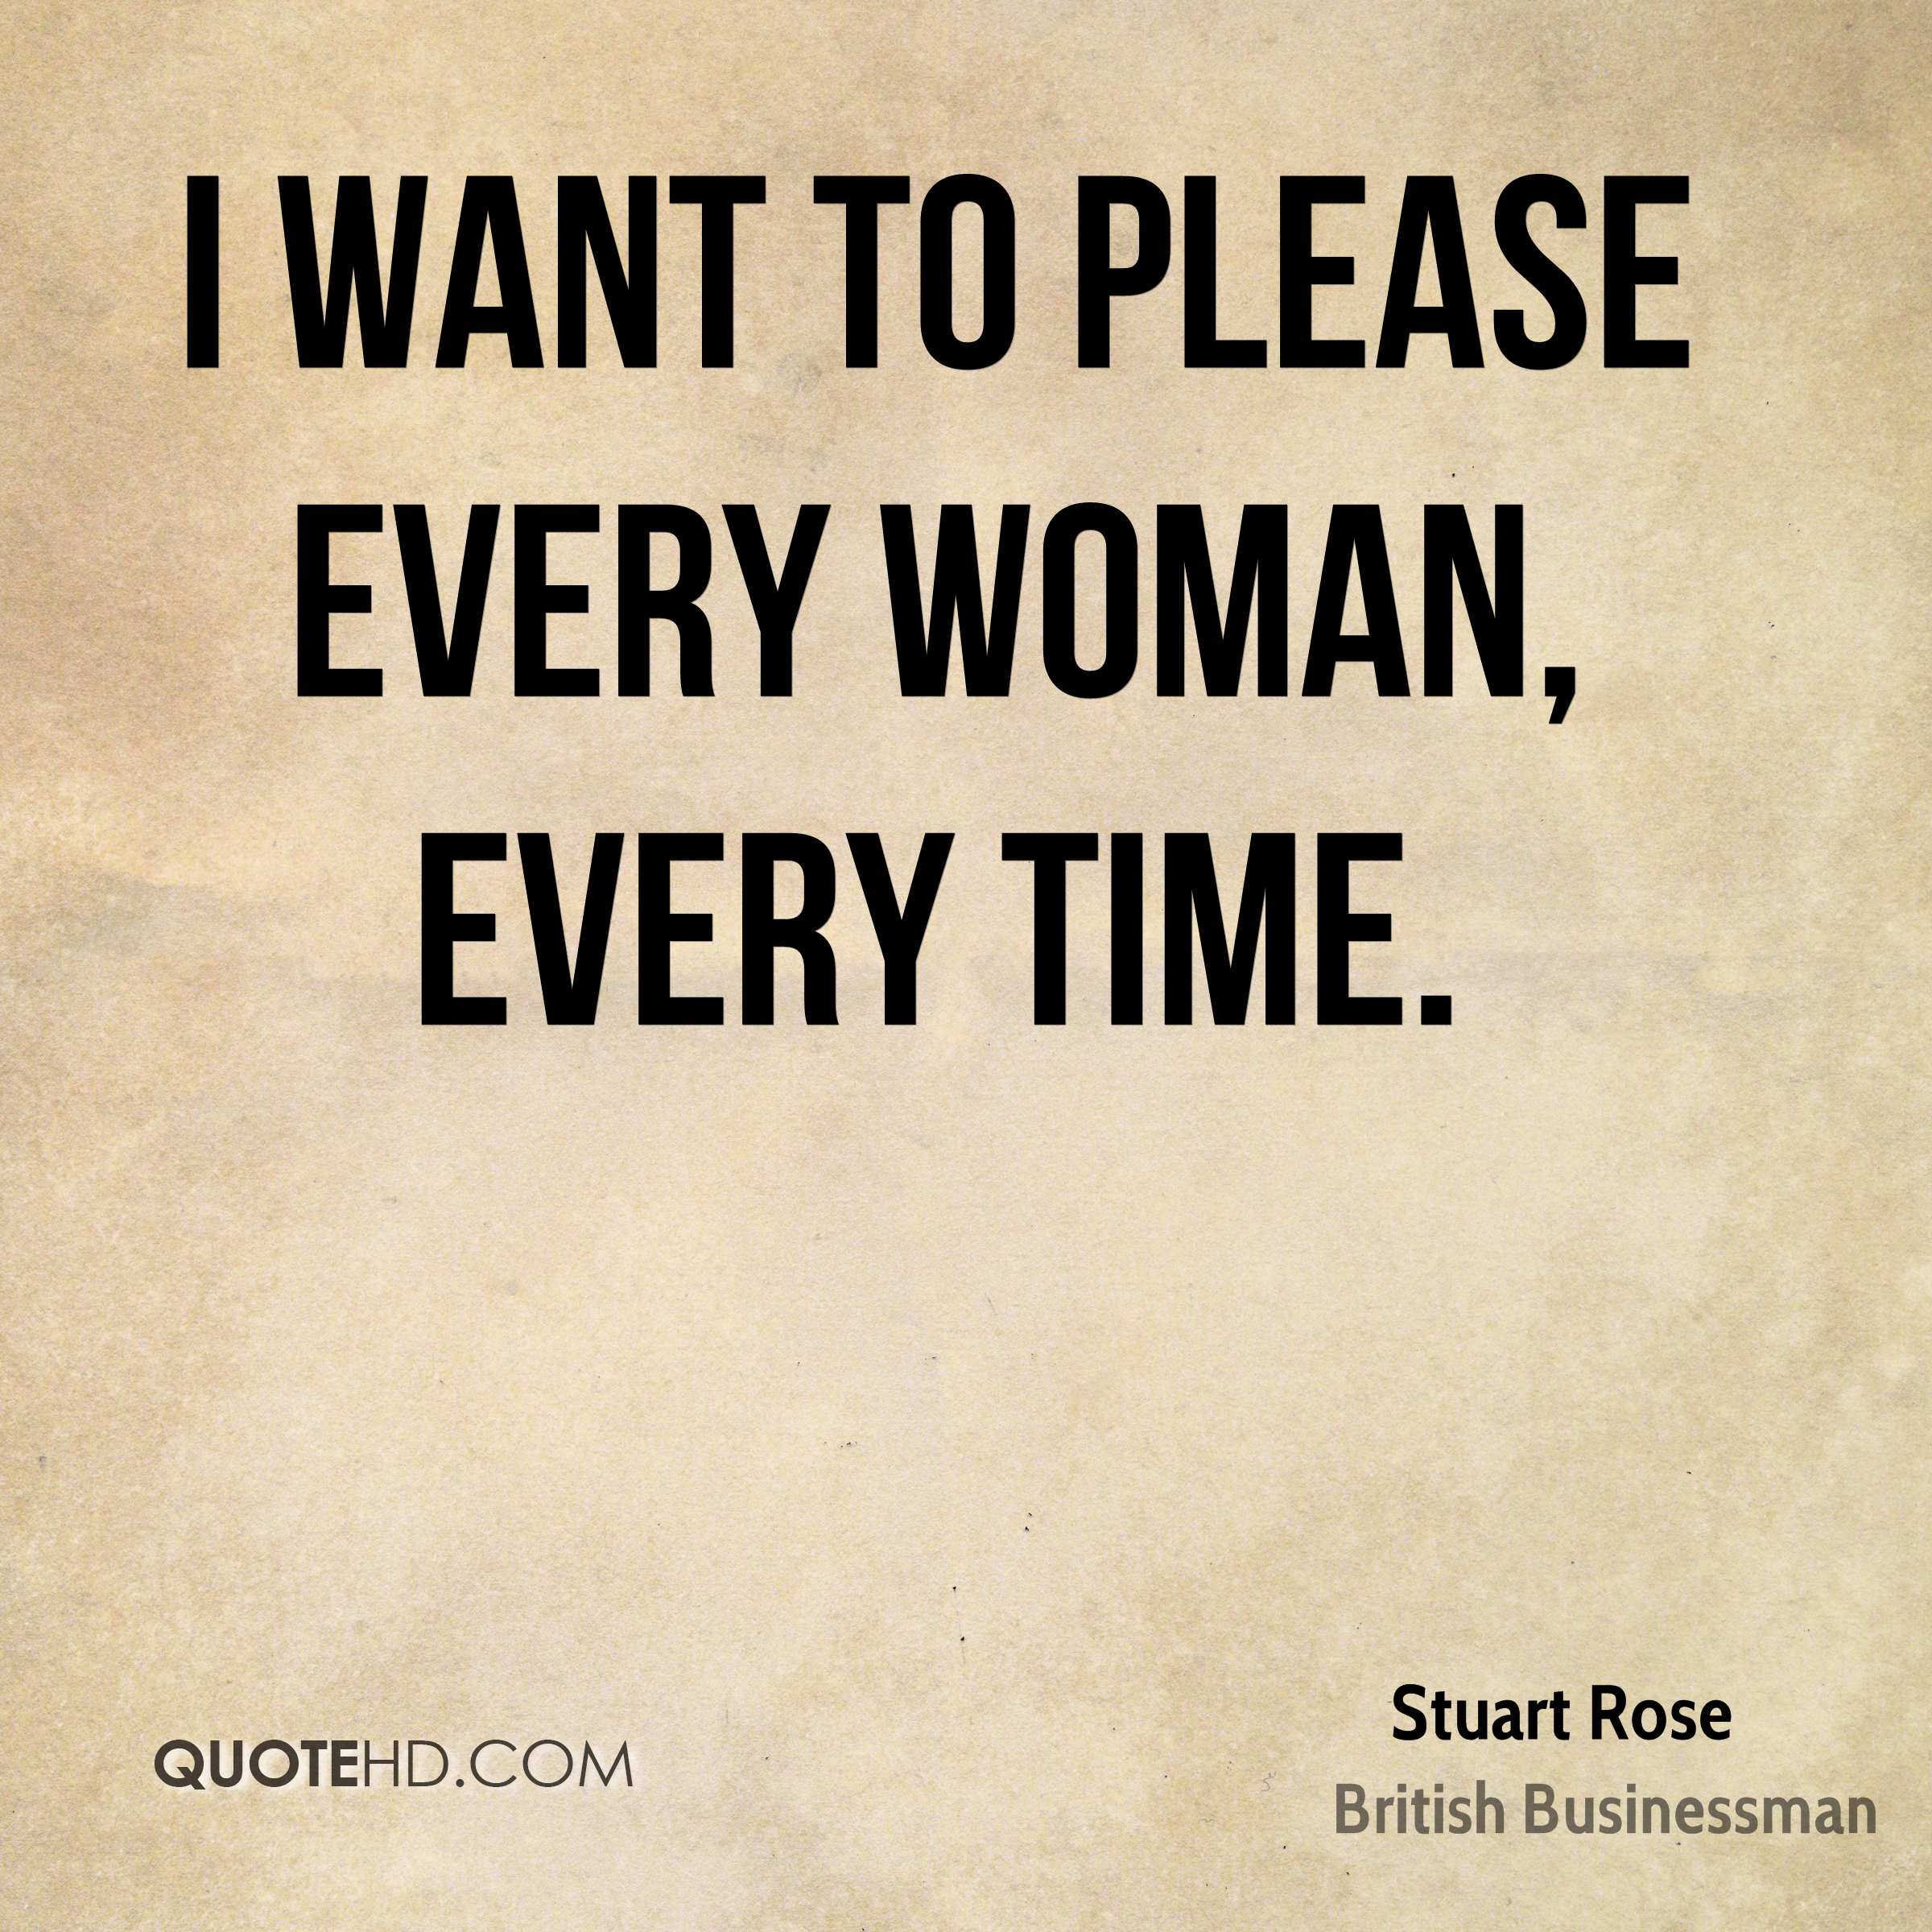 I want to please every woman, every time.